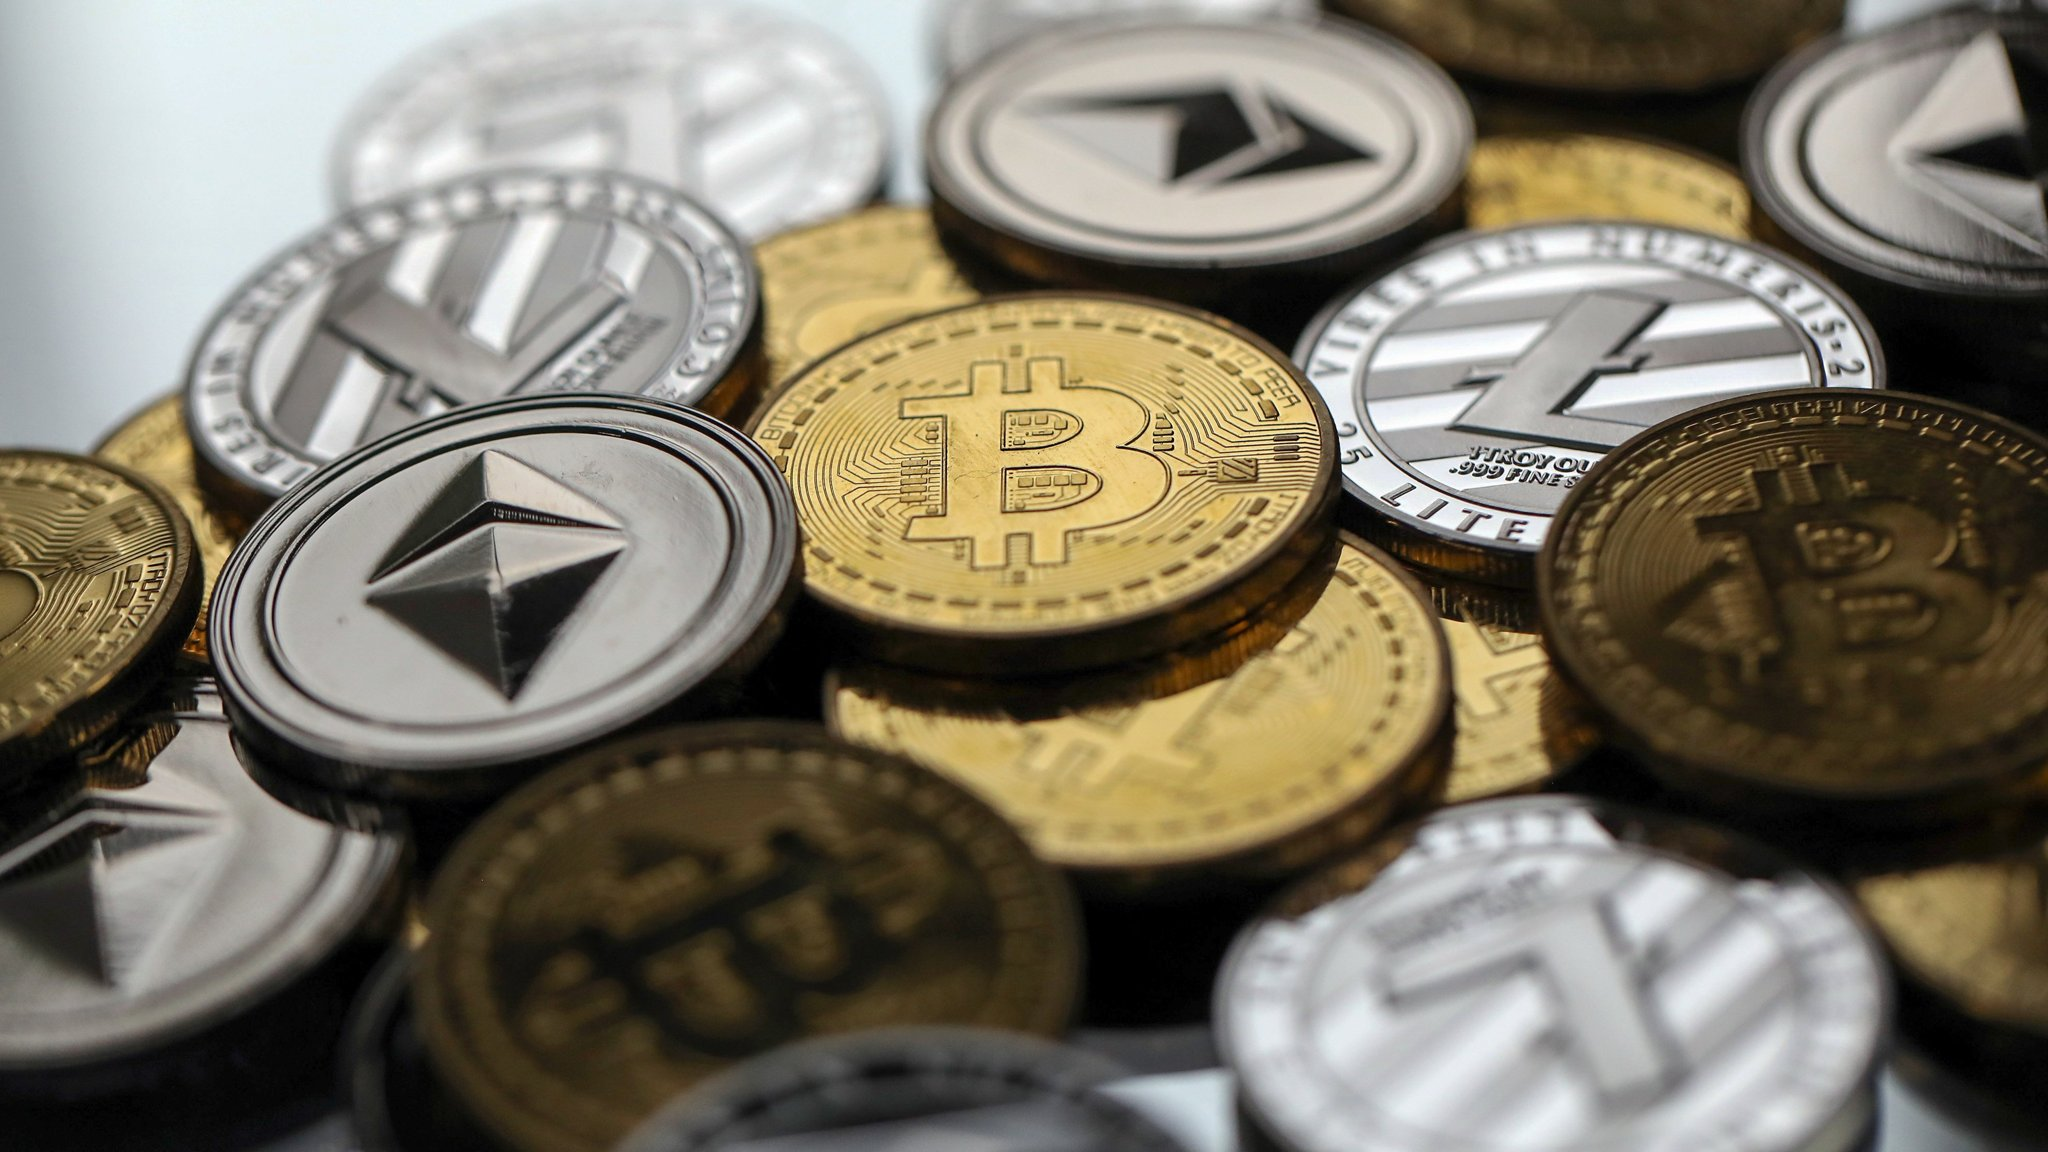 Economists' cryptocurrency aims to avoid pitfalls of bitcoin